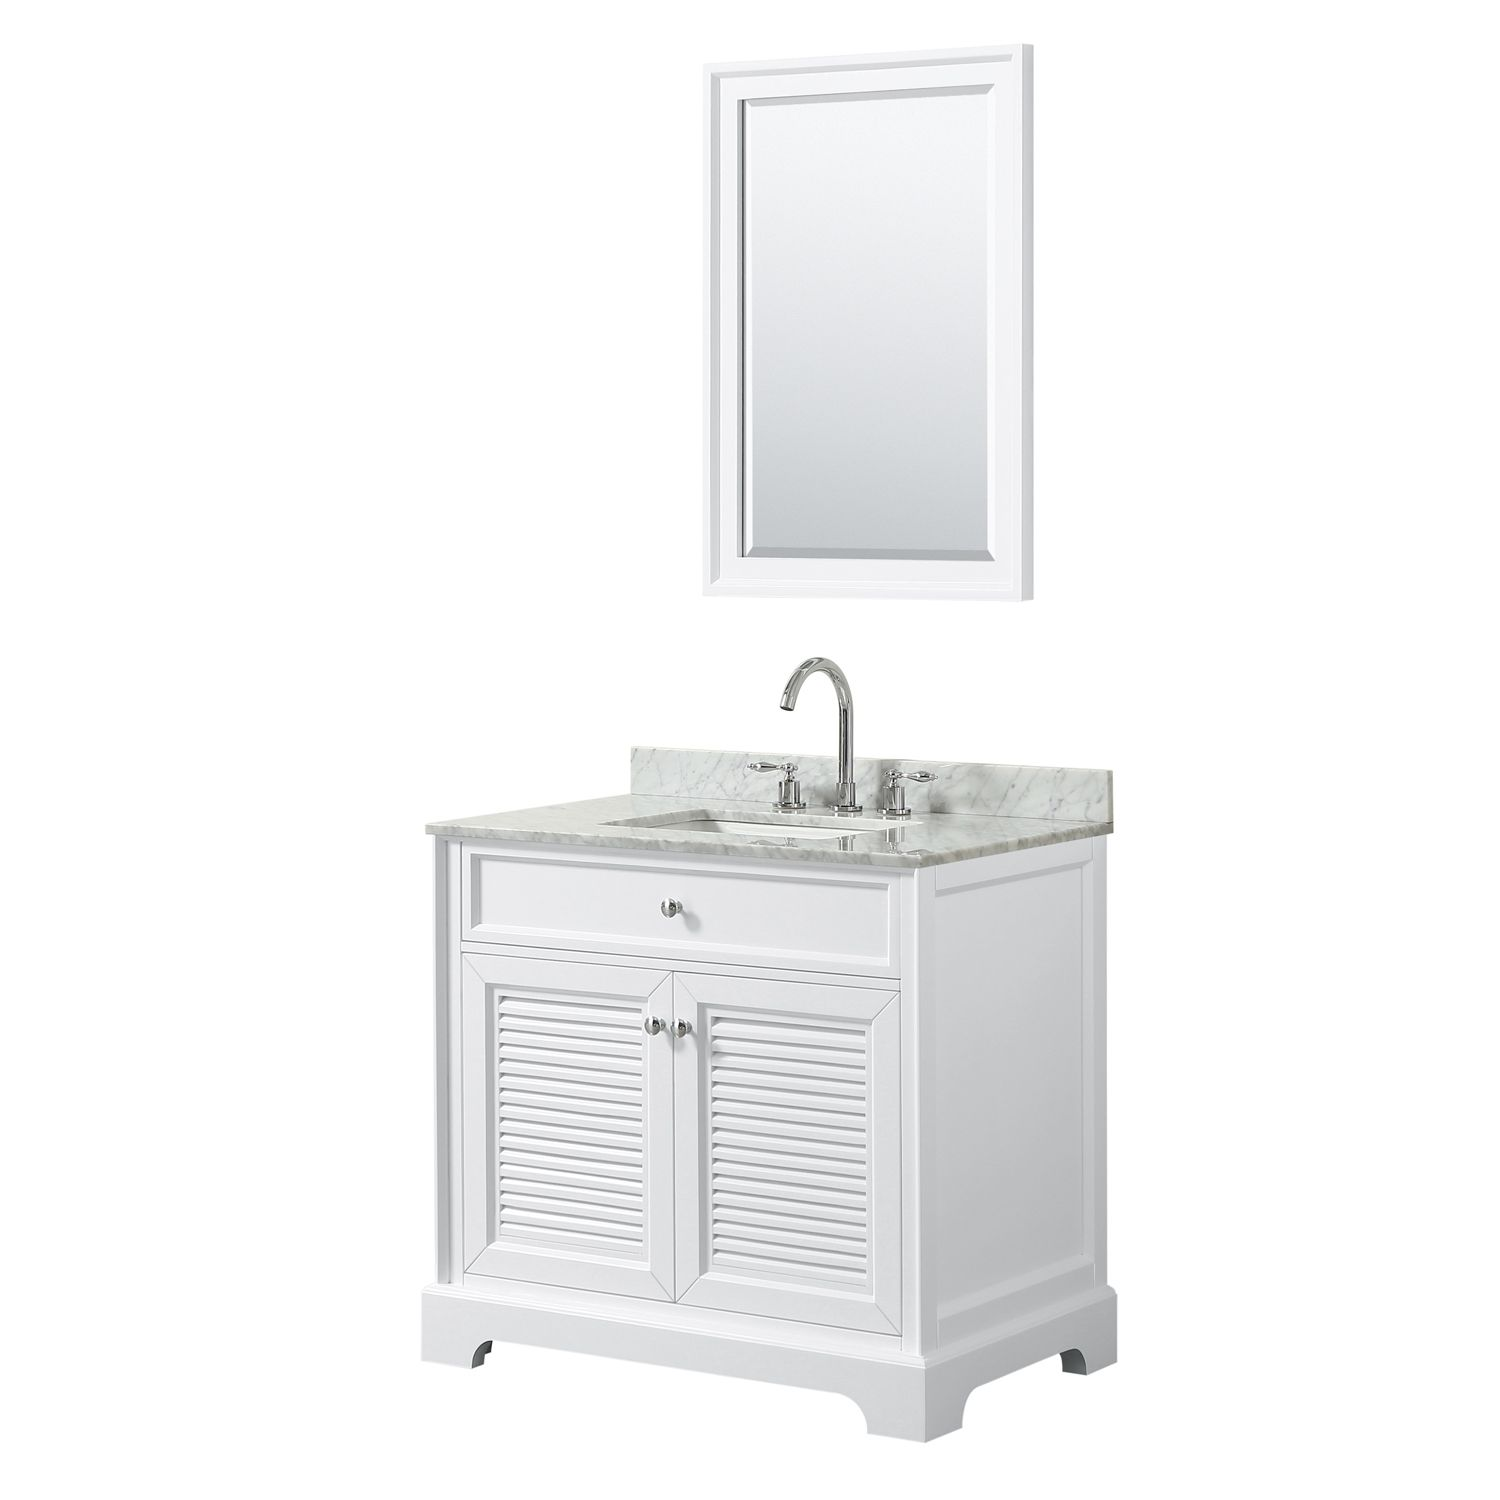 buy tamara 36 single bathroom vanity by wyndham collection white at modernbathroom com get free shipping and factory direct savings on tamara 36 single